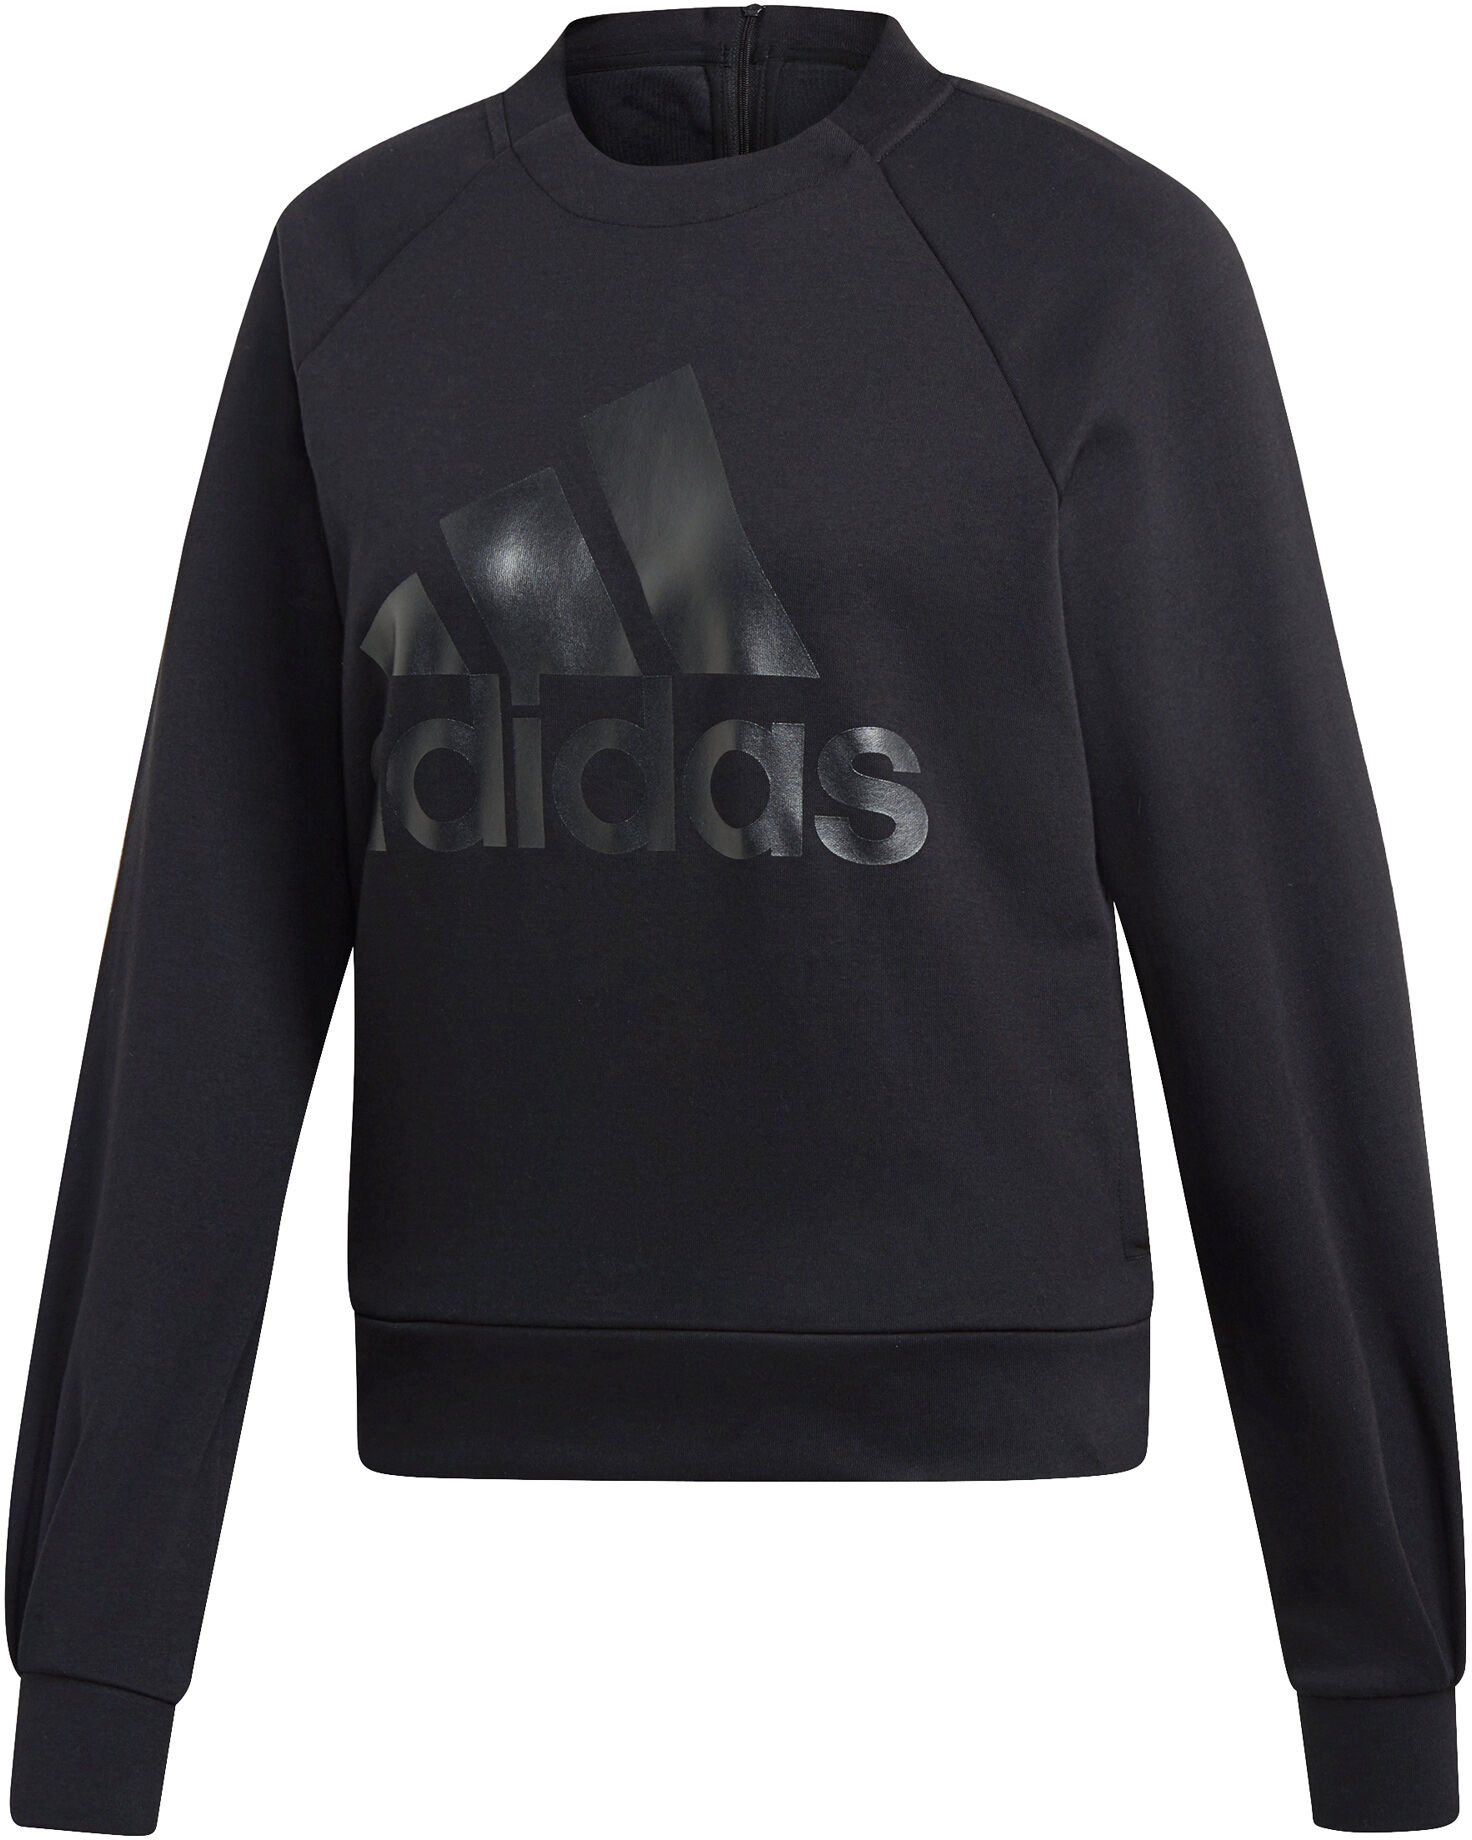 adidas Dames Truien | The Athletes Foot